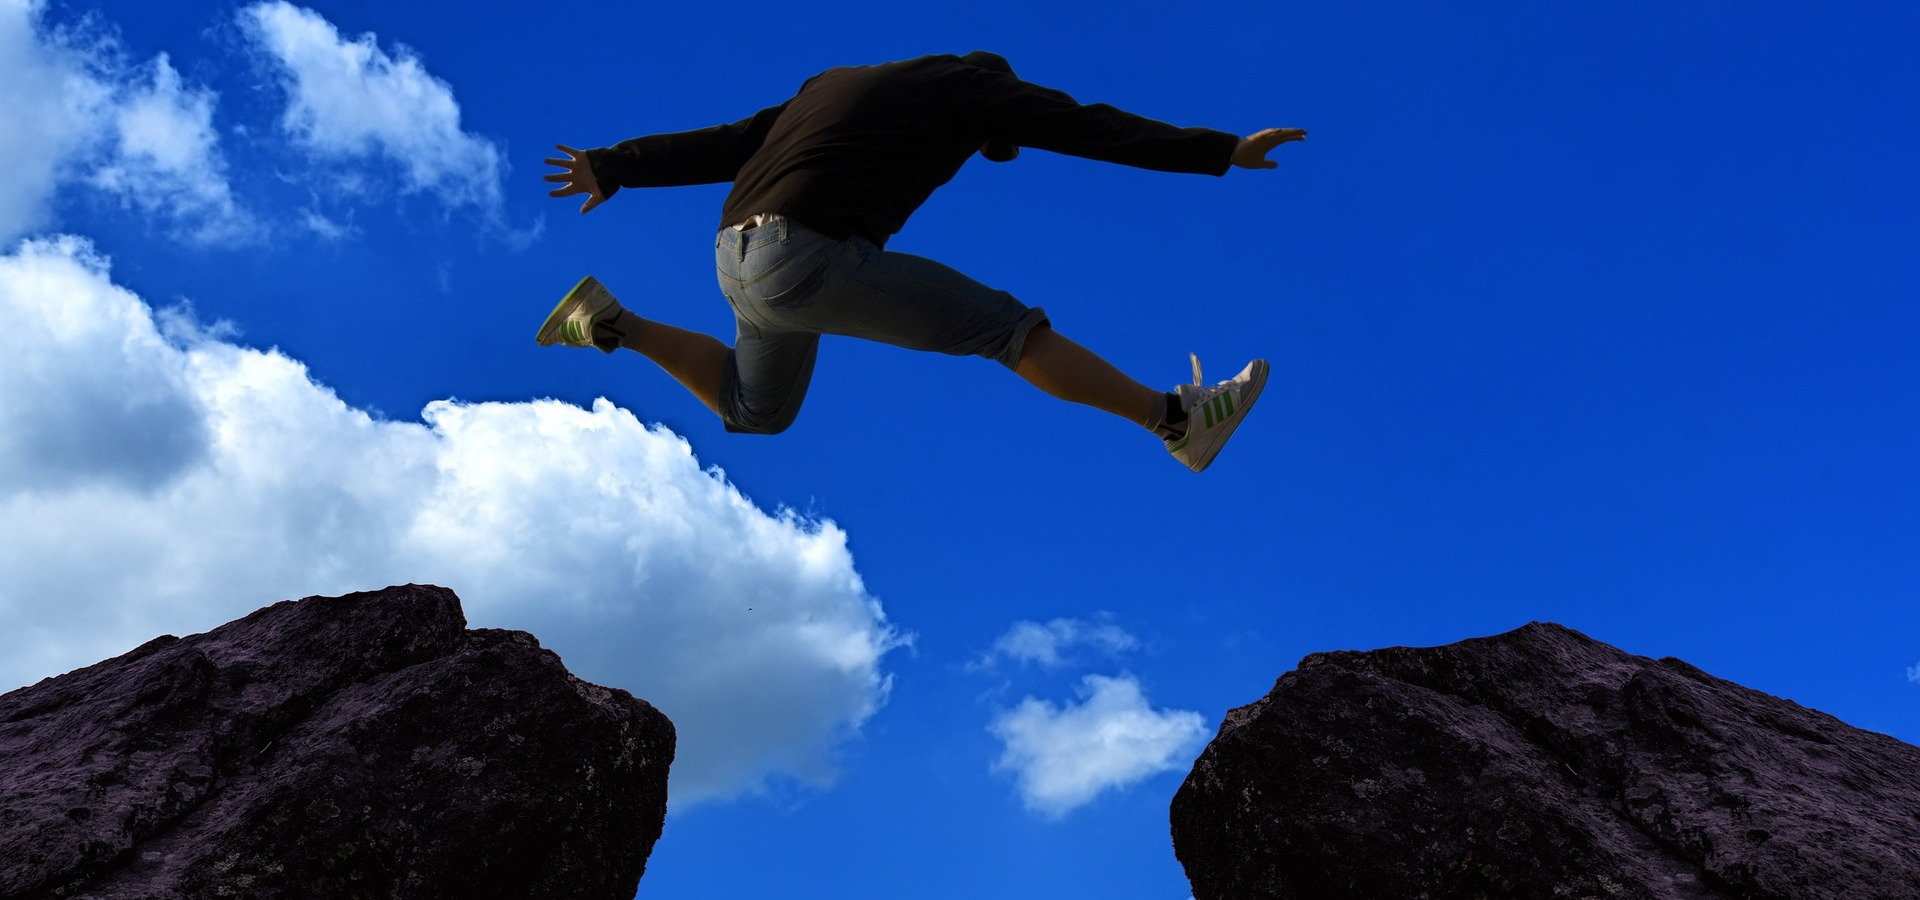 Runner leaping between two rocks against a blue sky